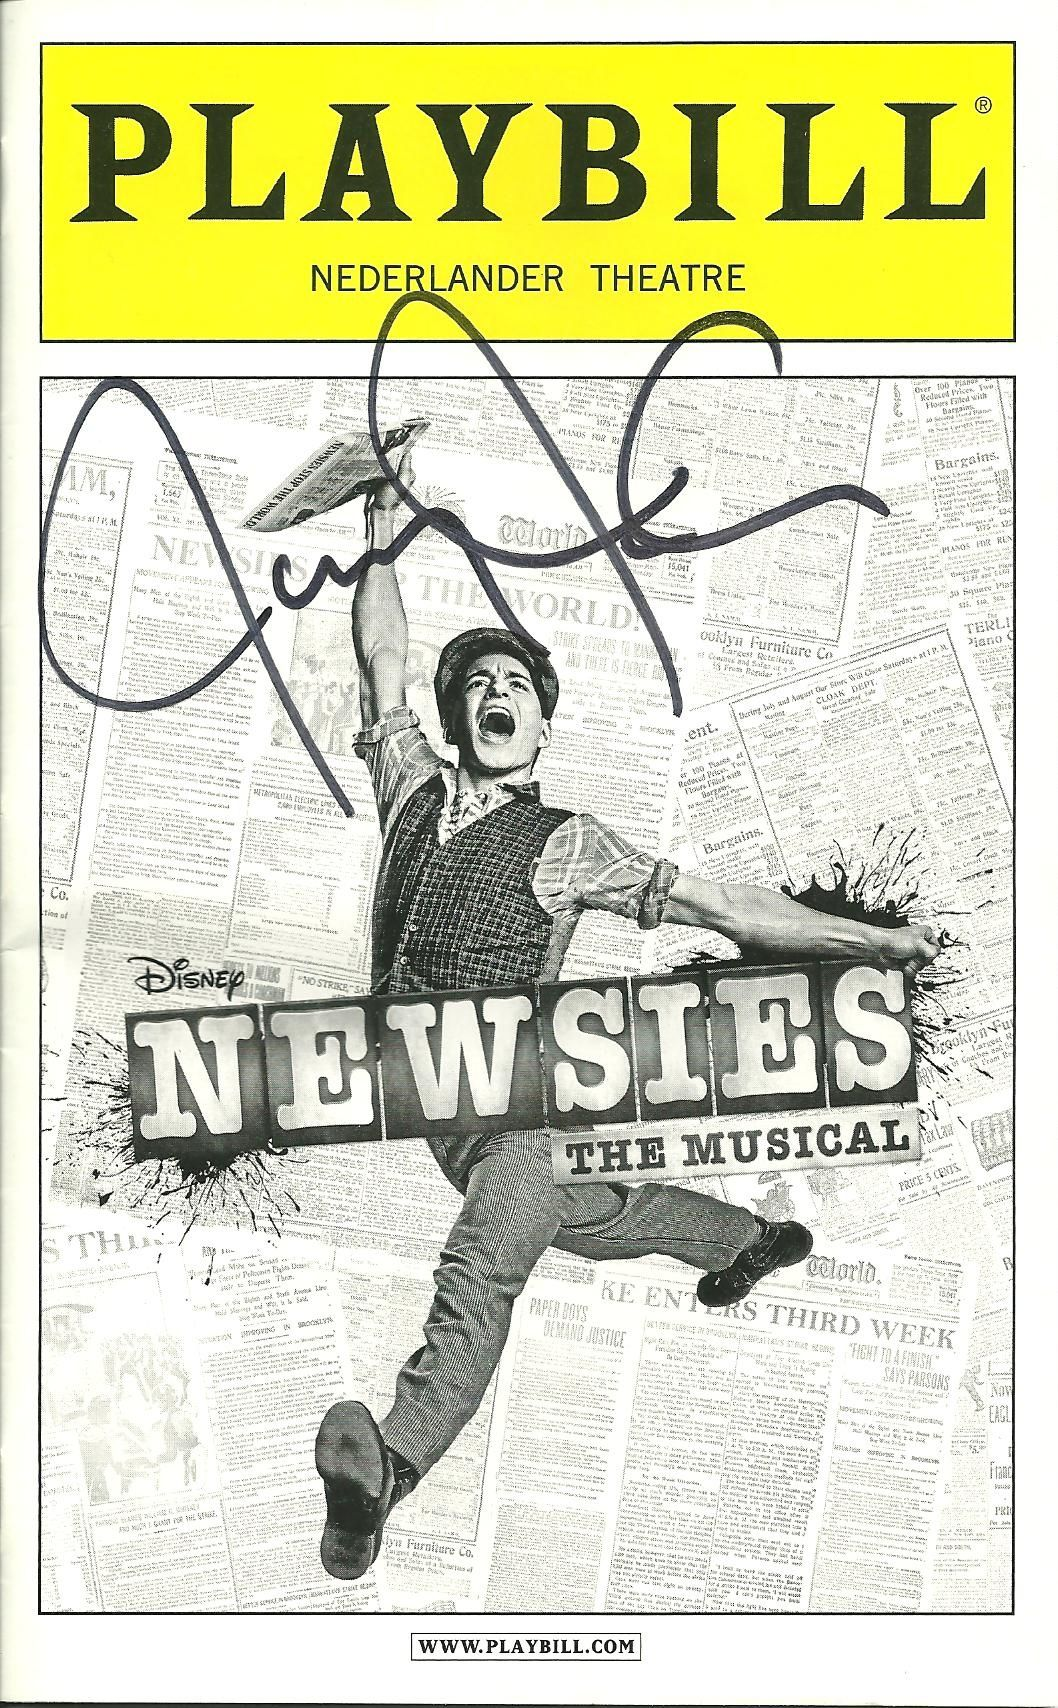 Signed Newsies Playbill: loved this movie as a kid now so want to see the musical.